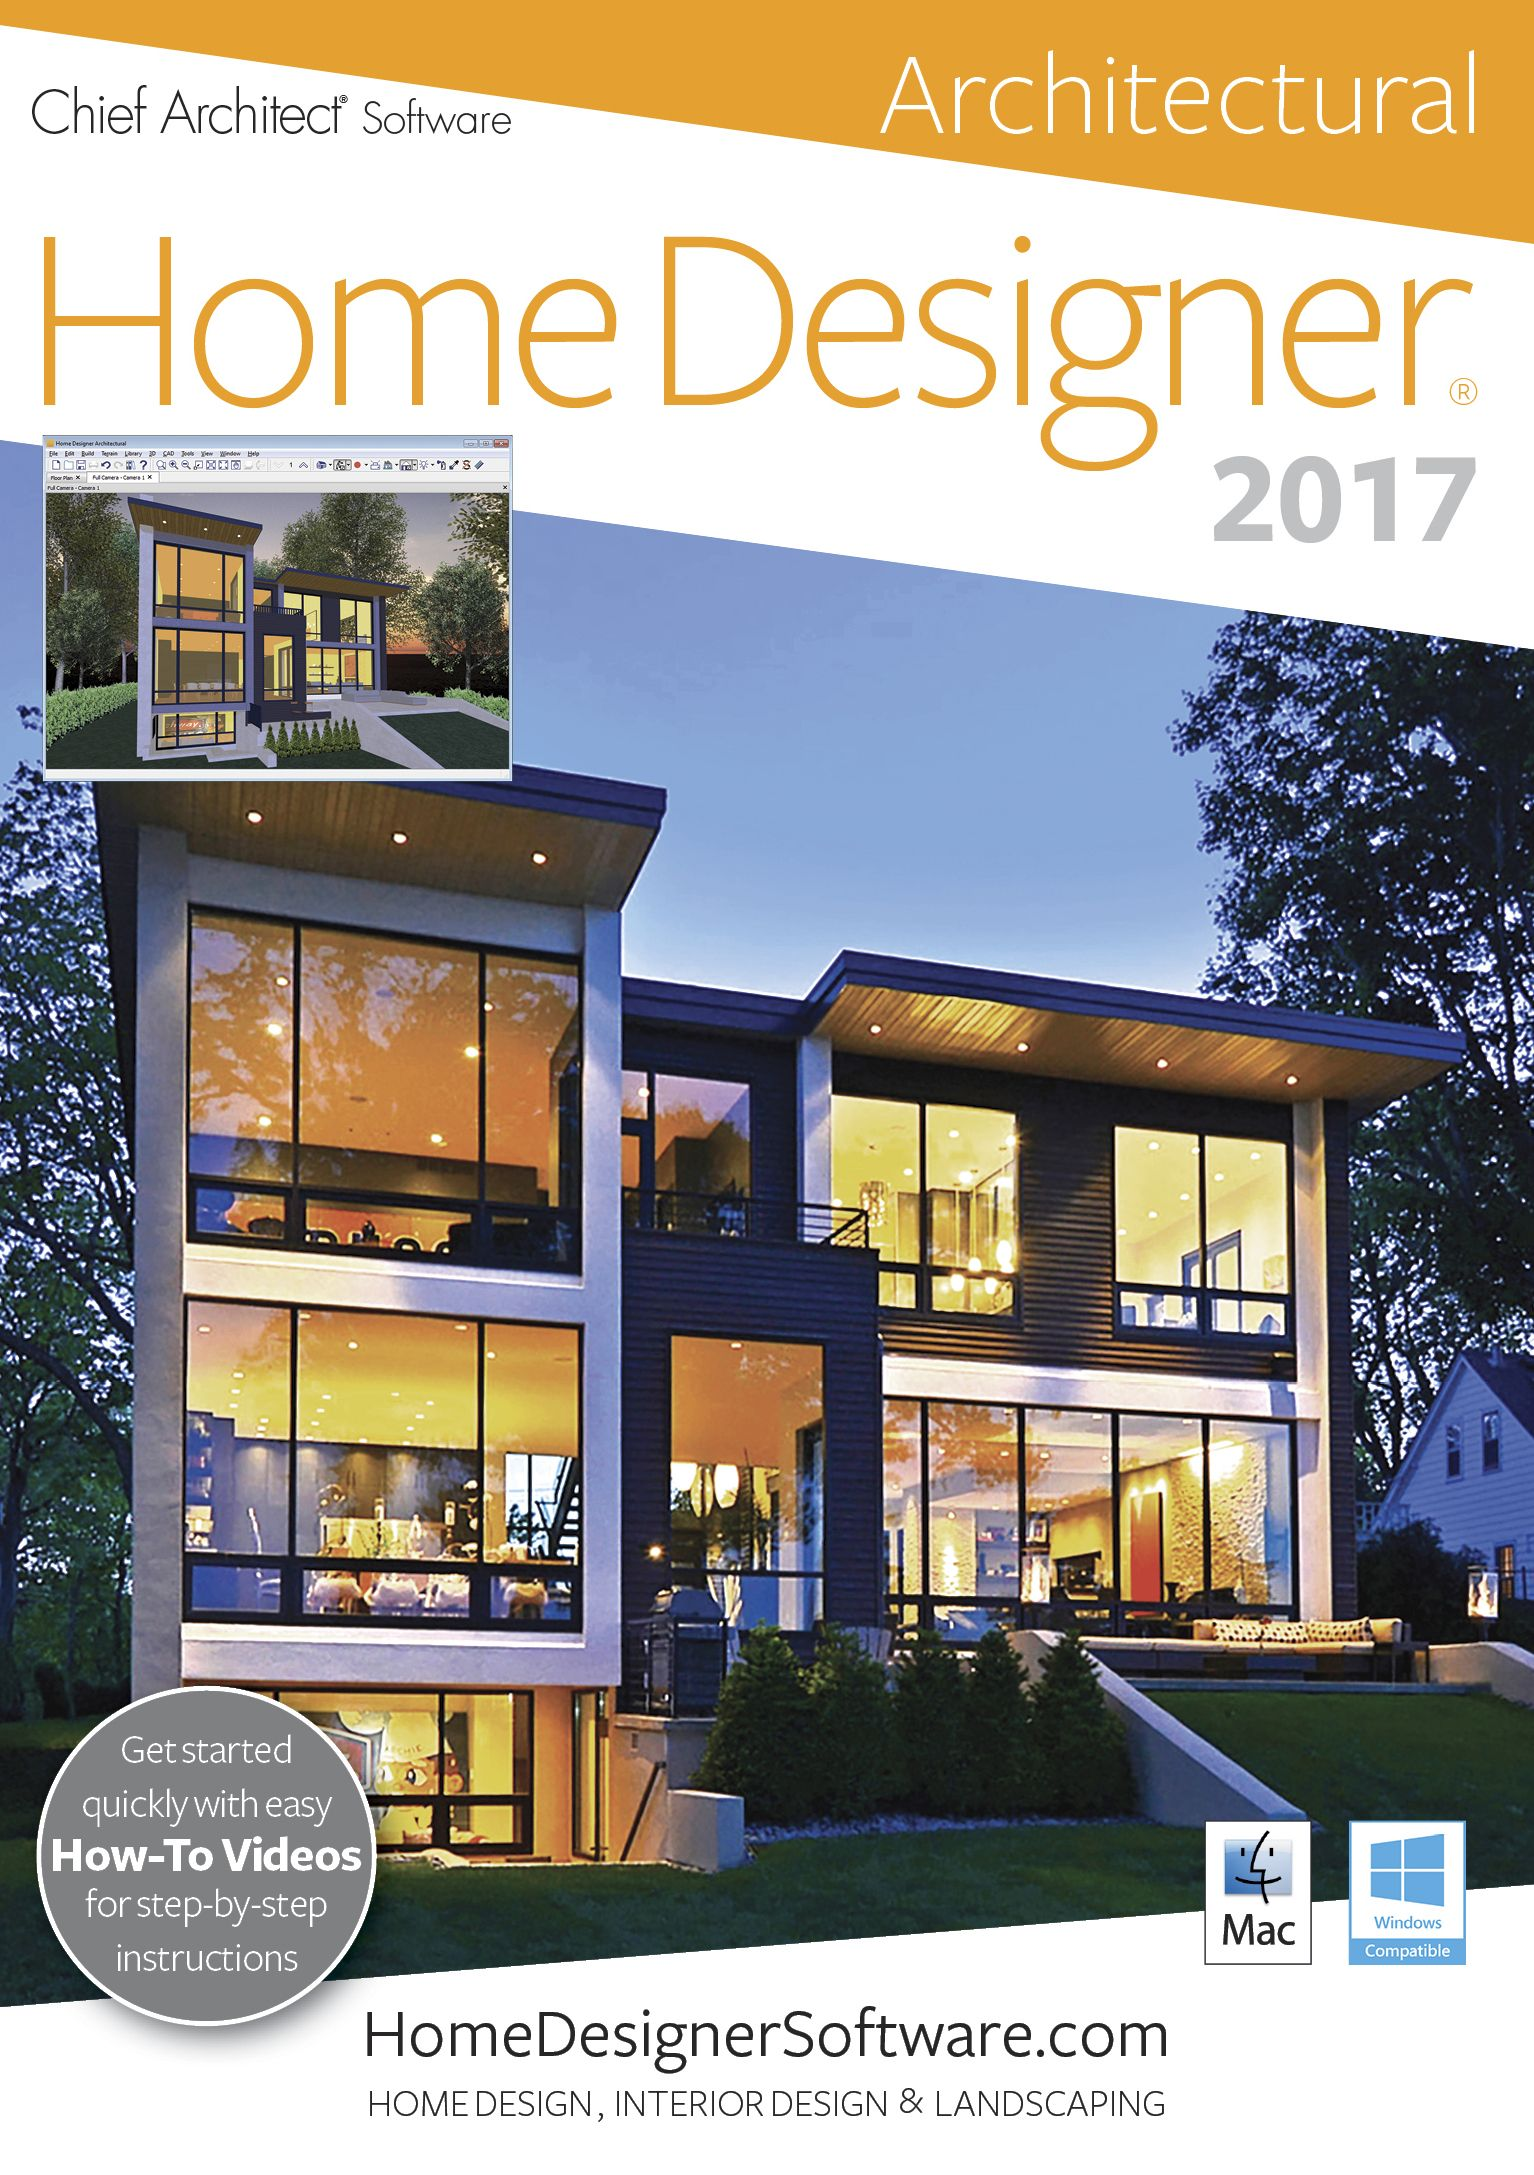 Home Designer Architectural 2017 Pc Go To The Picture Web Link More Details This Is An Affiliate Architect Software Design Remodel Home Design Software